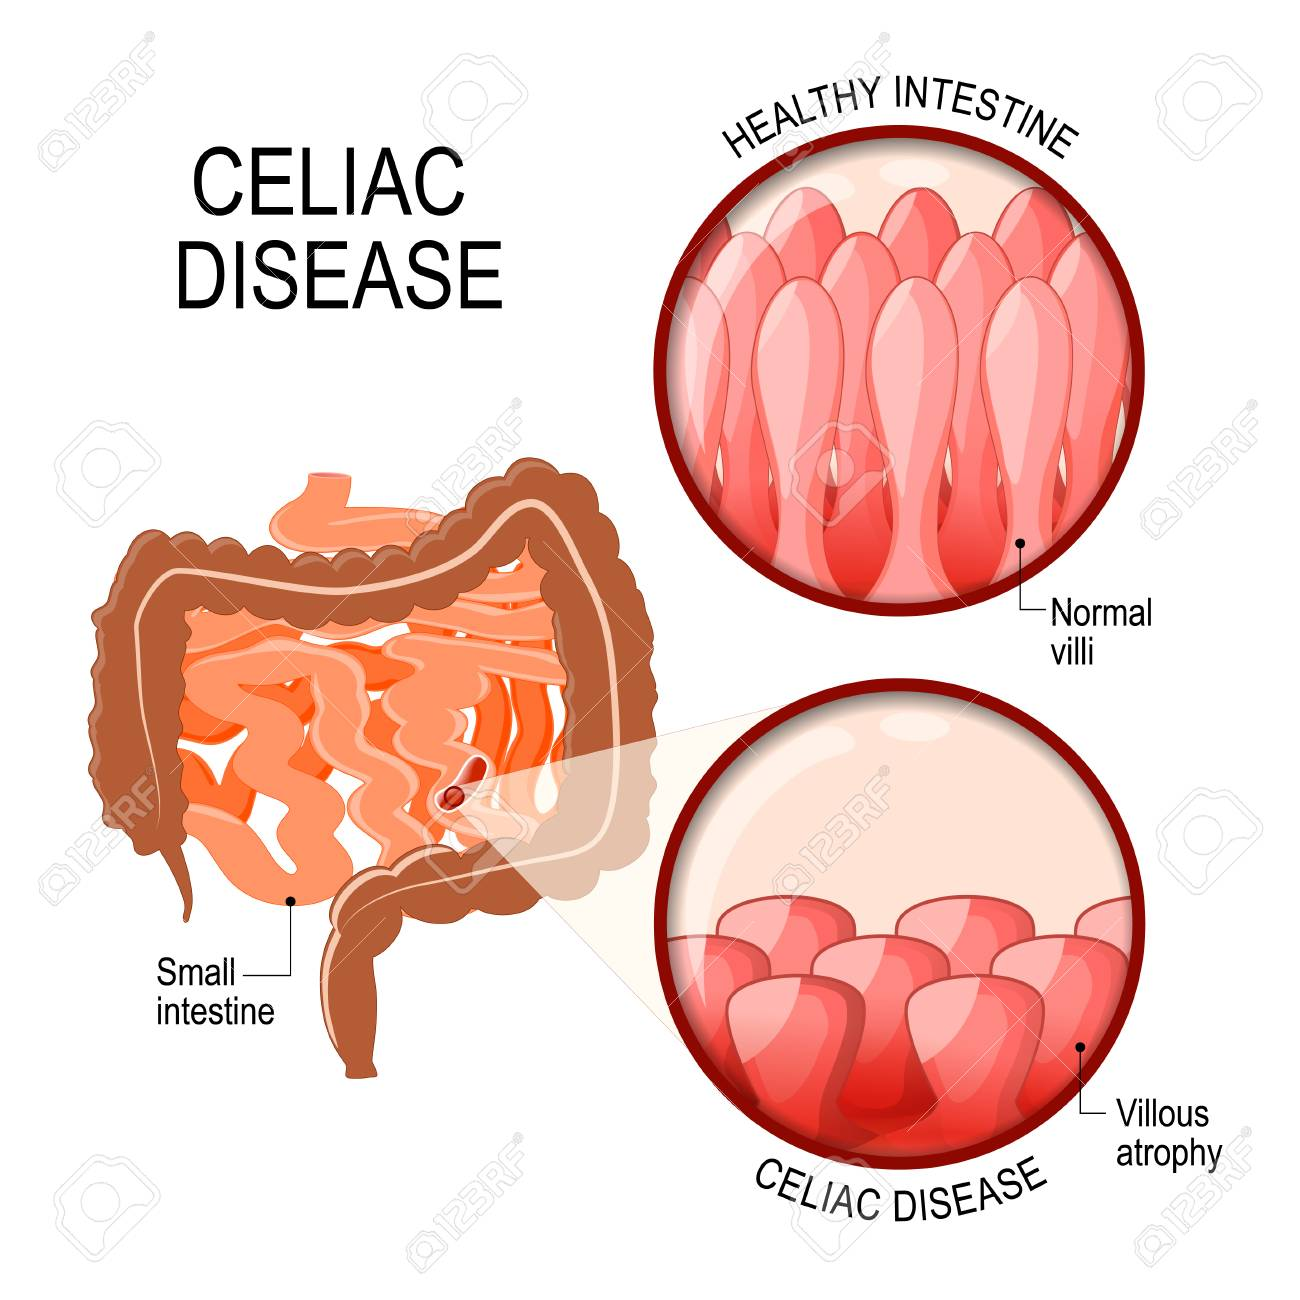 celiac disease small intestinal with normal villi, and villous villi in small intestine in celiac disease celiac disease small intestinal with normal villi, and villous atrophy diagram showing changes